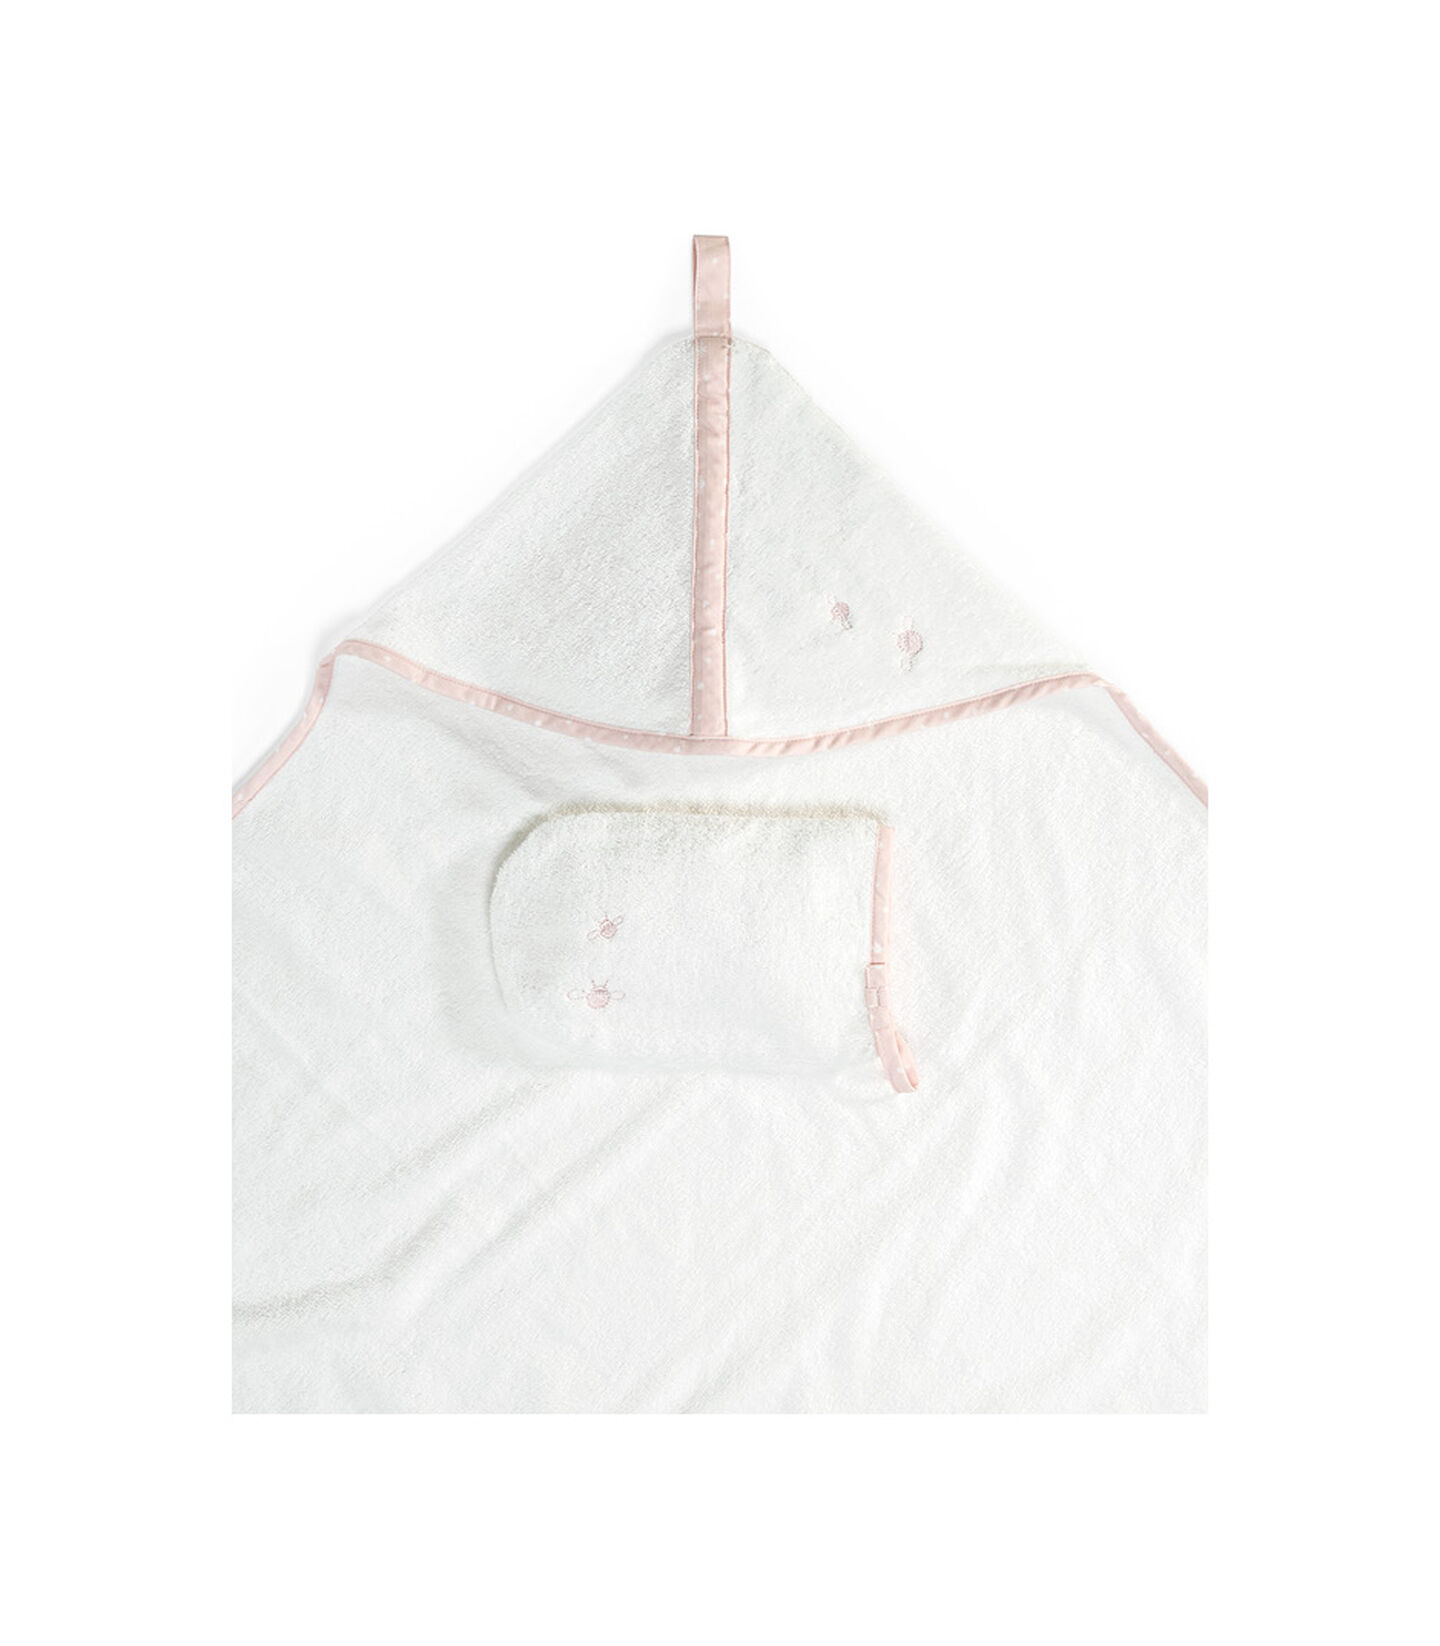 Stokke® Hooded Towel Pink Bee, Pink Bee, mainview view 2